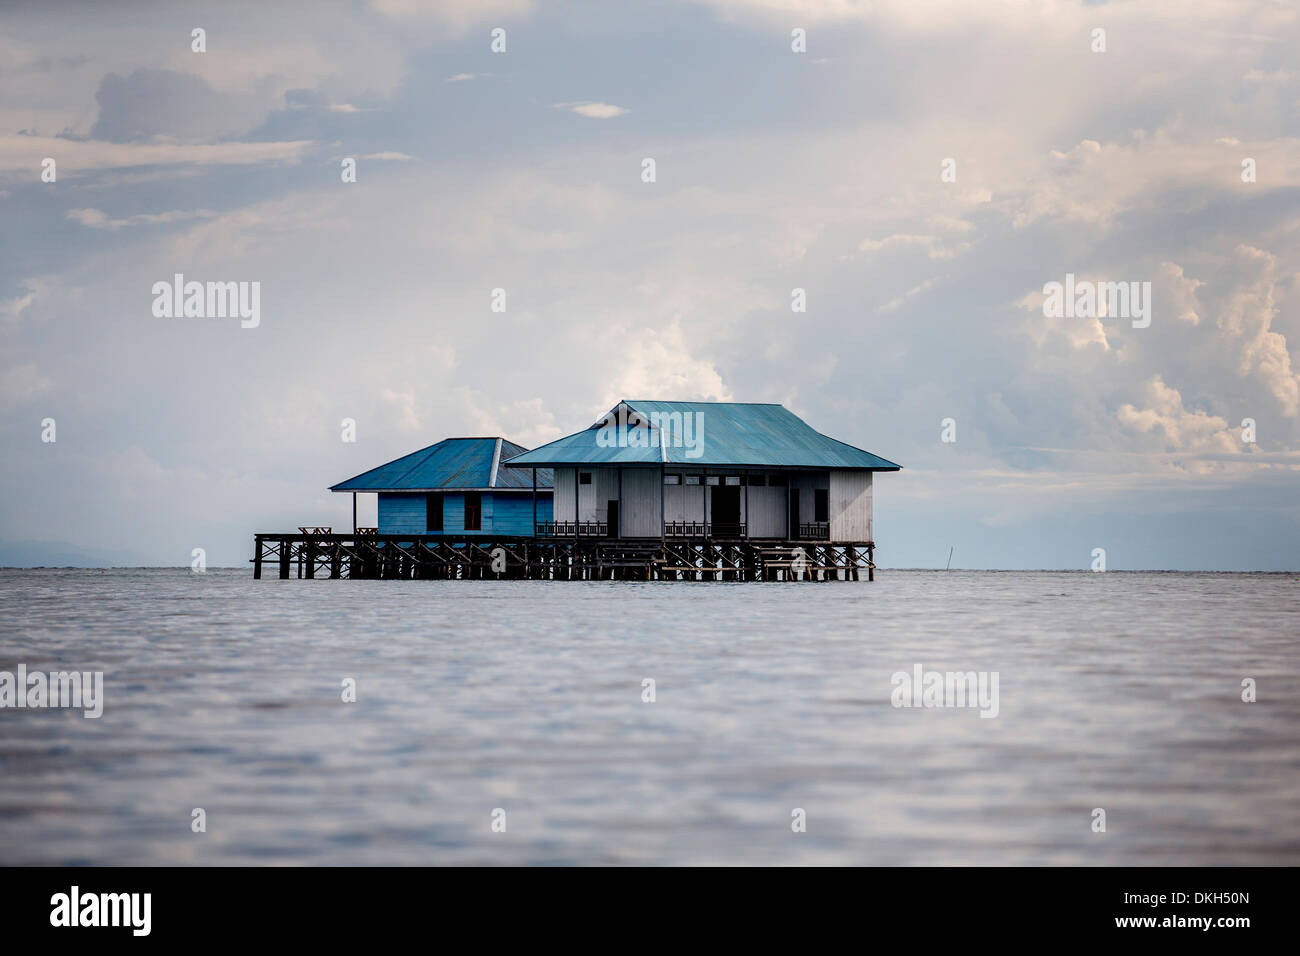 A house over the ocean, Togian Islands, Sulawesi, Indonesia, Southeast Asia, Asia - Stock Image